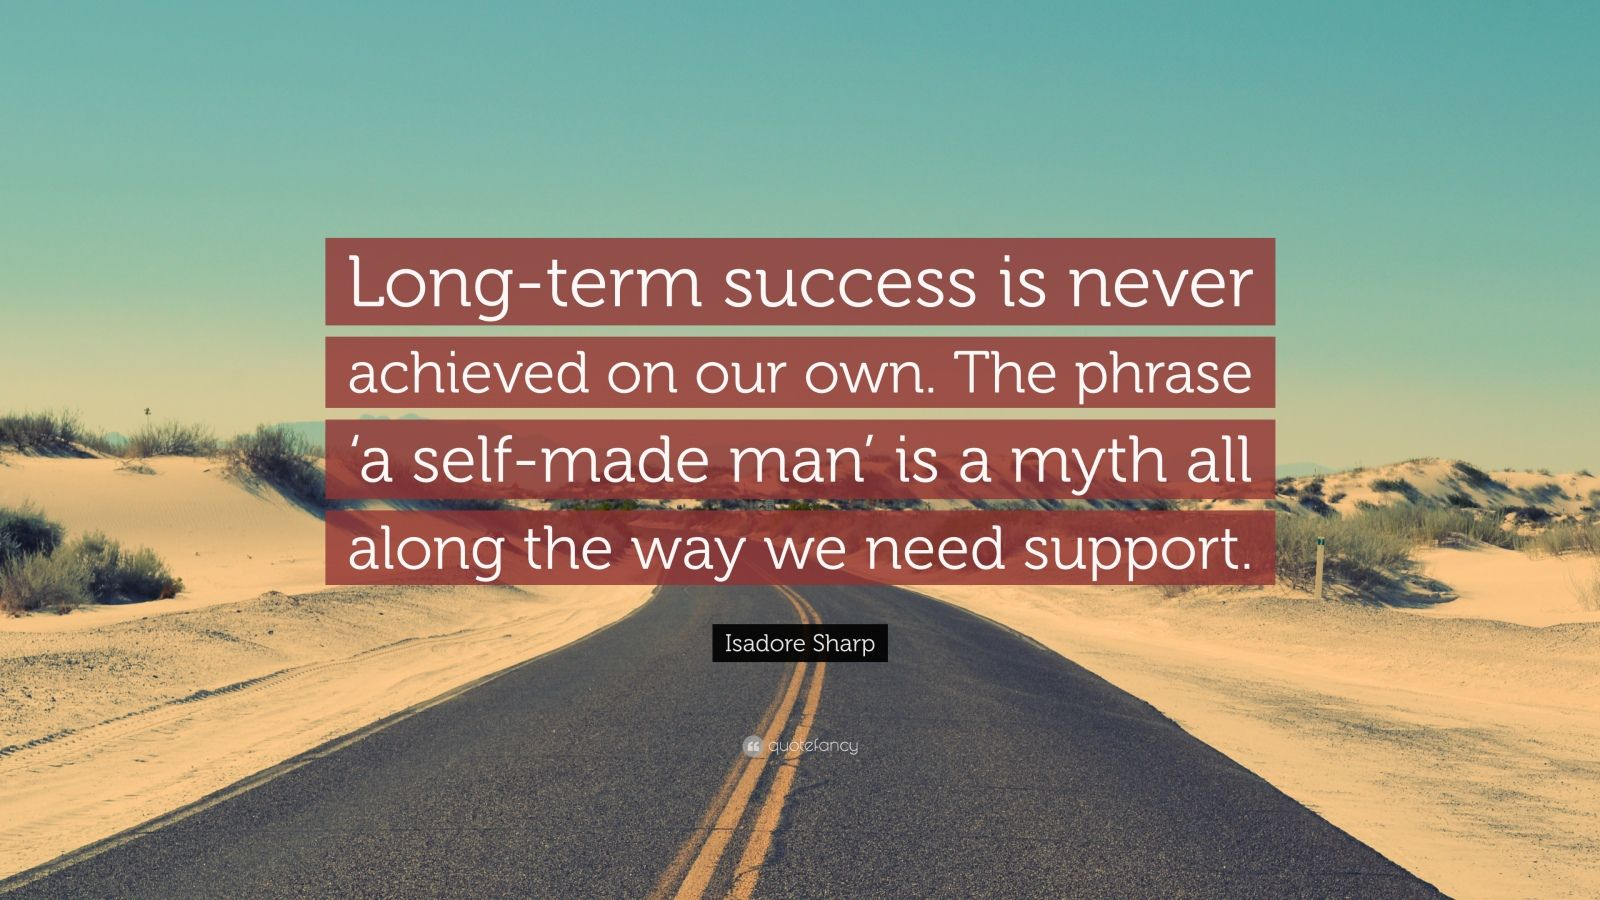 """Isadore Sharp Quote: """"Long-term success is never achieved on our own. The phrase 'a self-made man' is a myth all along the way we need support."""""""